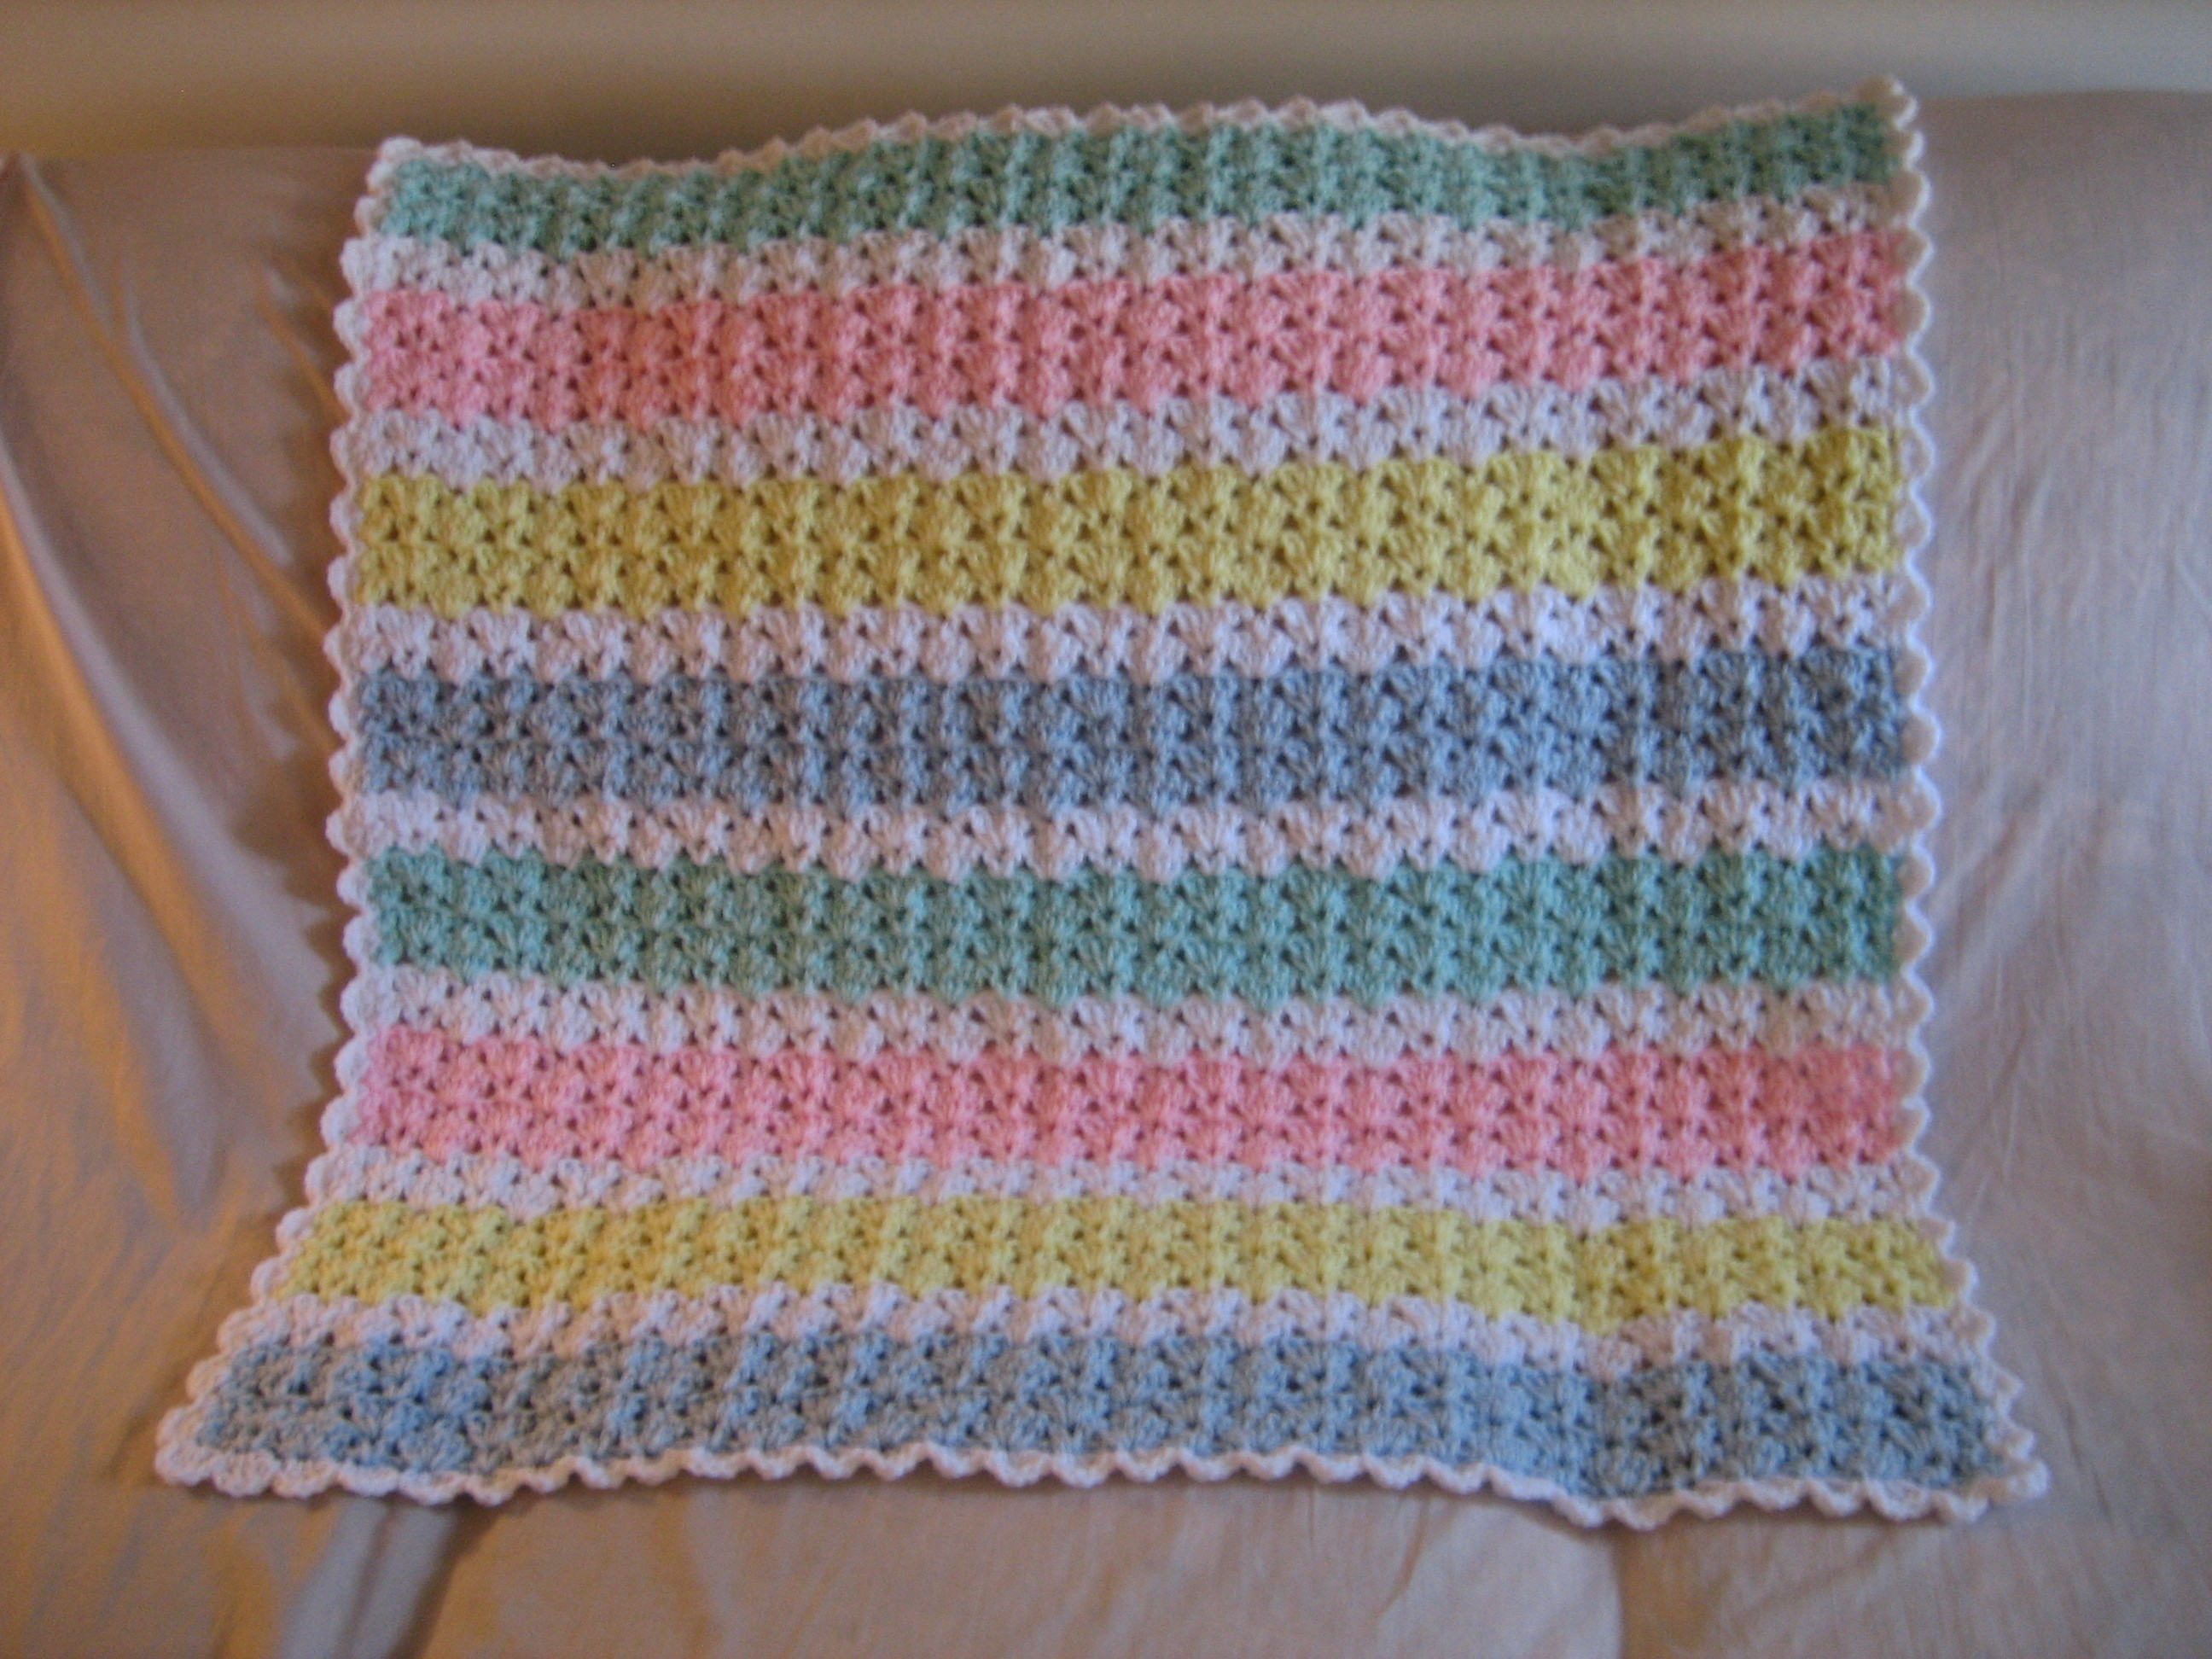 Free Crochet Baby Afghan Patterns Fresh Pastel Baby Afghan Pattern Of Superb 46 Photos Free Crochet Baby Afghan Patterns